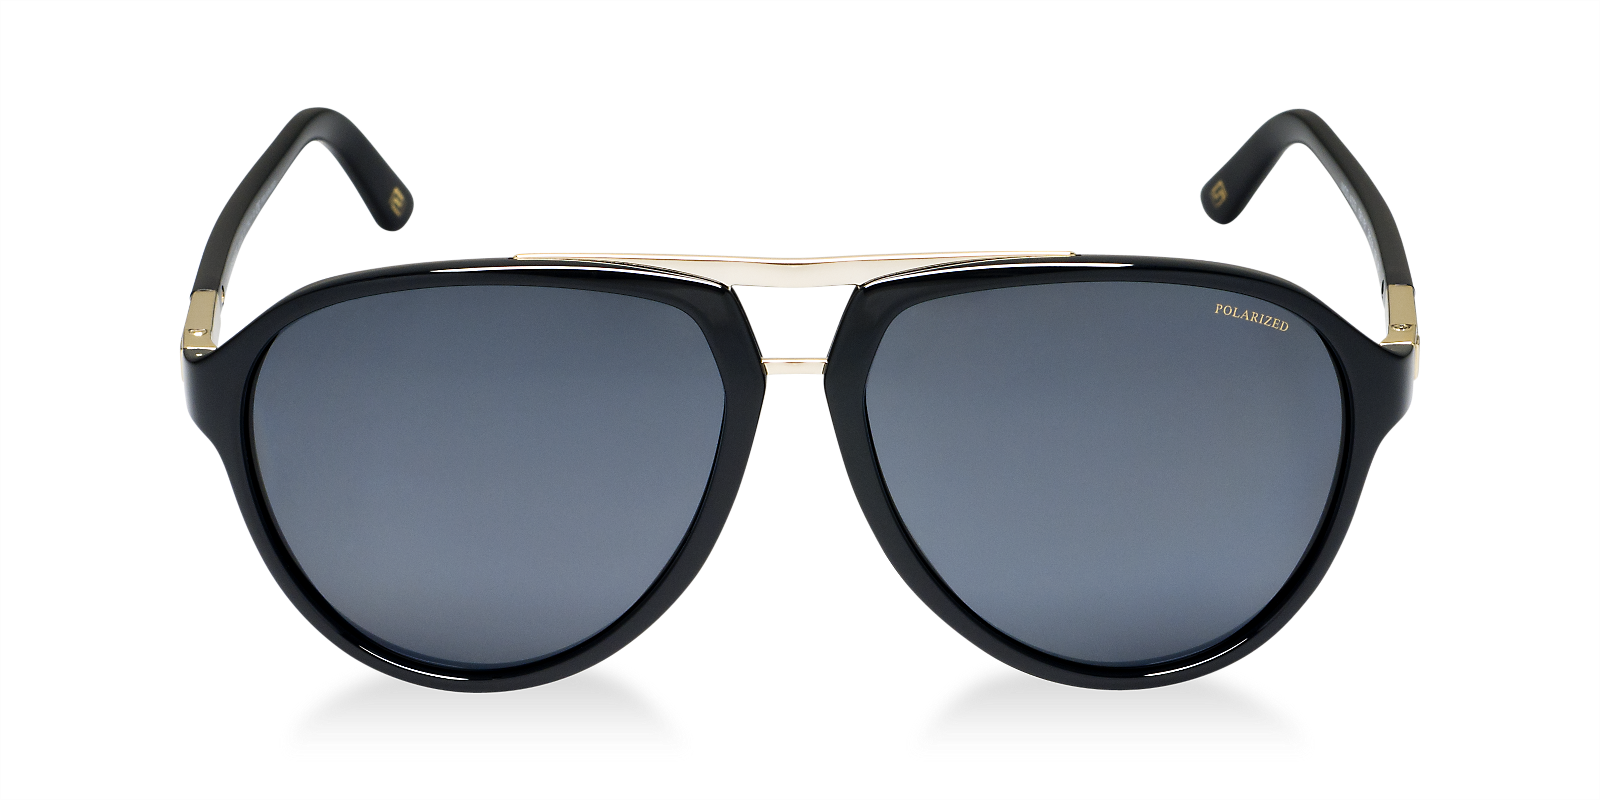 VE4223 sunglasses are a sleek option for the Spring season. Cheers